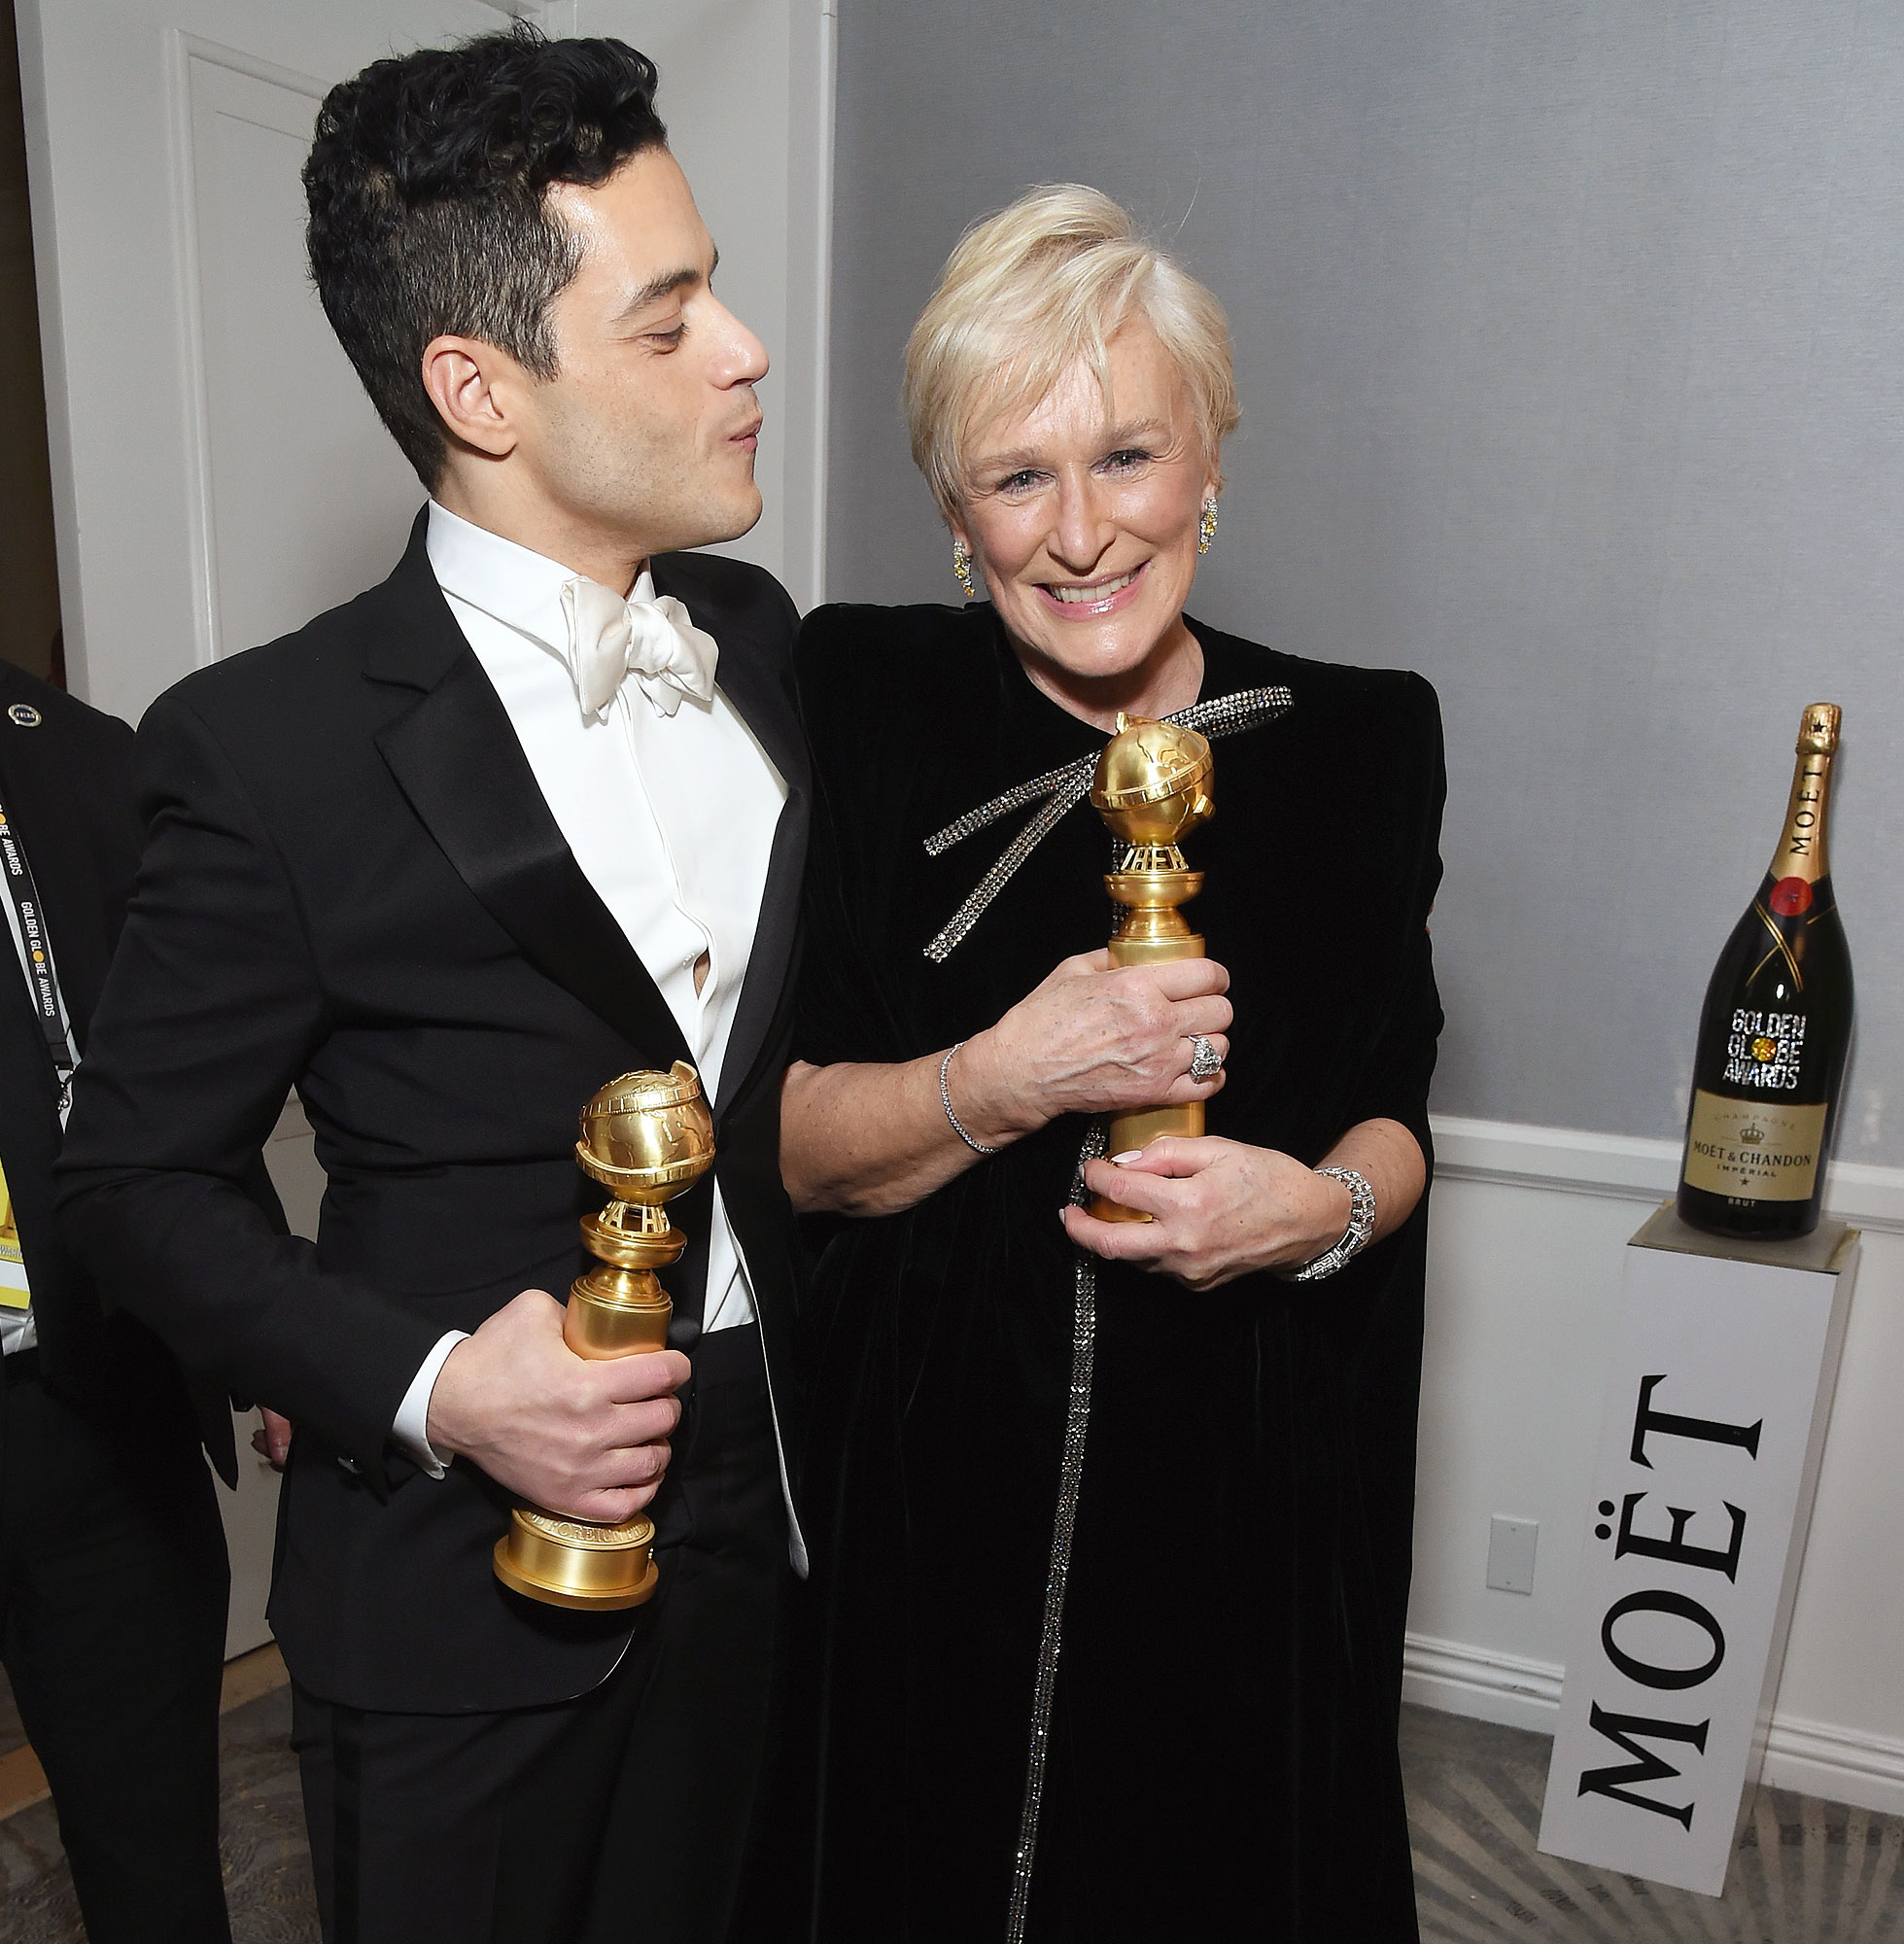 Inside Golden Globes 2019 Rami Malek Glenn Close - Rami Malek and Glenn Close compared trophies backstage after their big acting wins for Bohemian Rhapsody and The Wife , respectively.